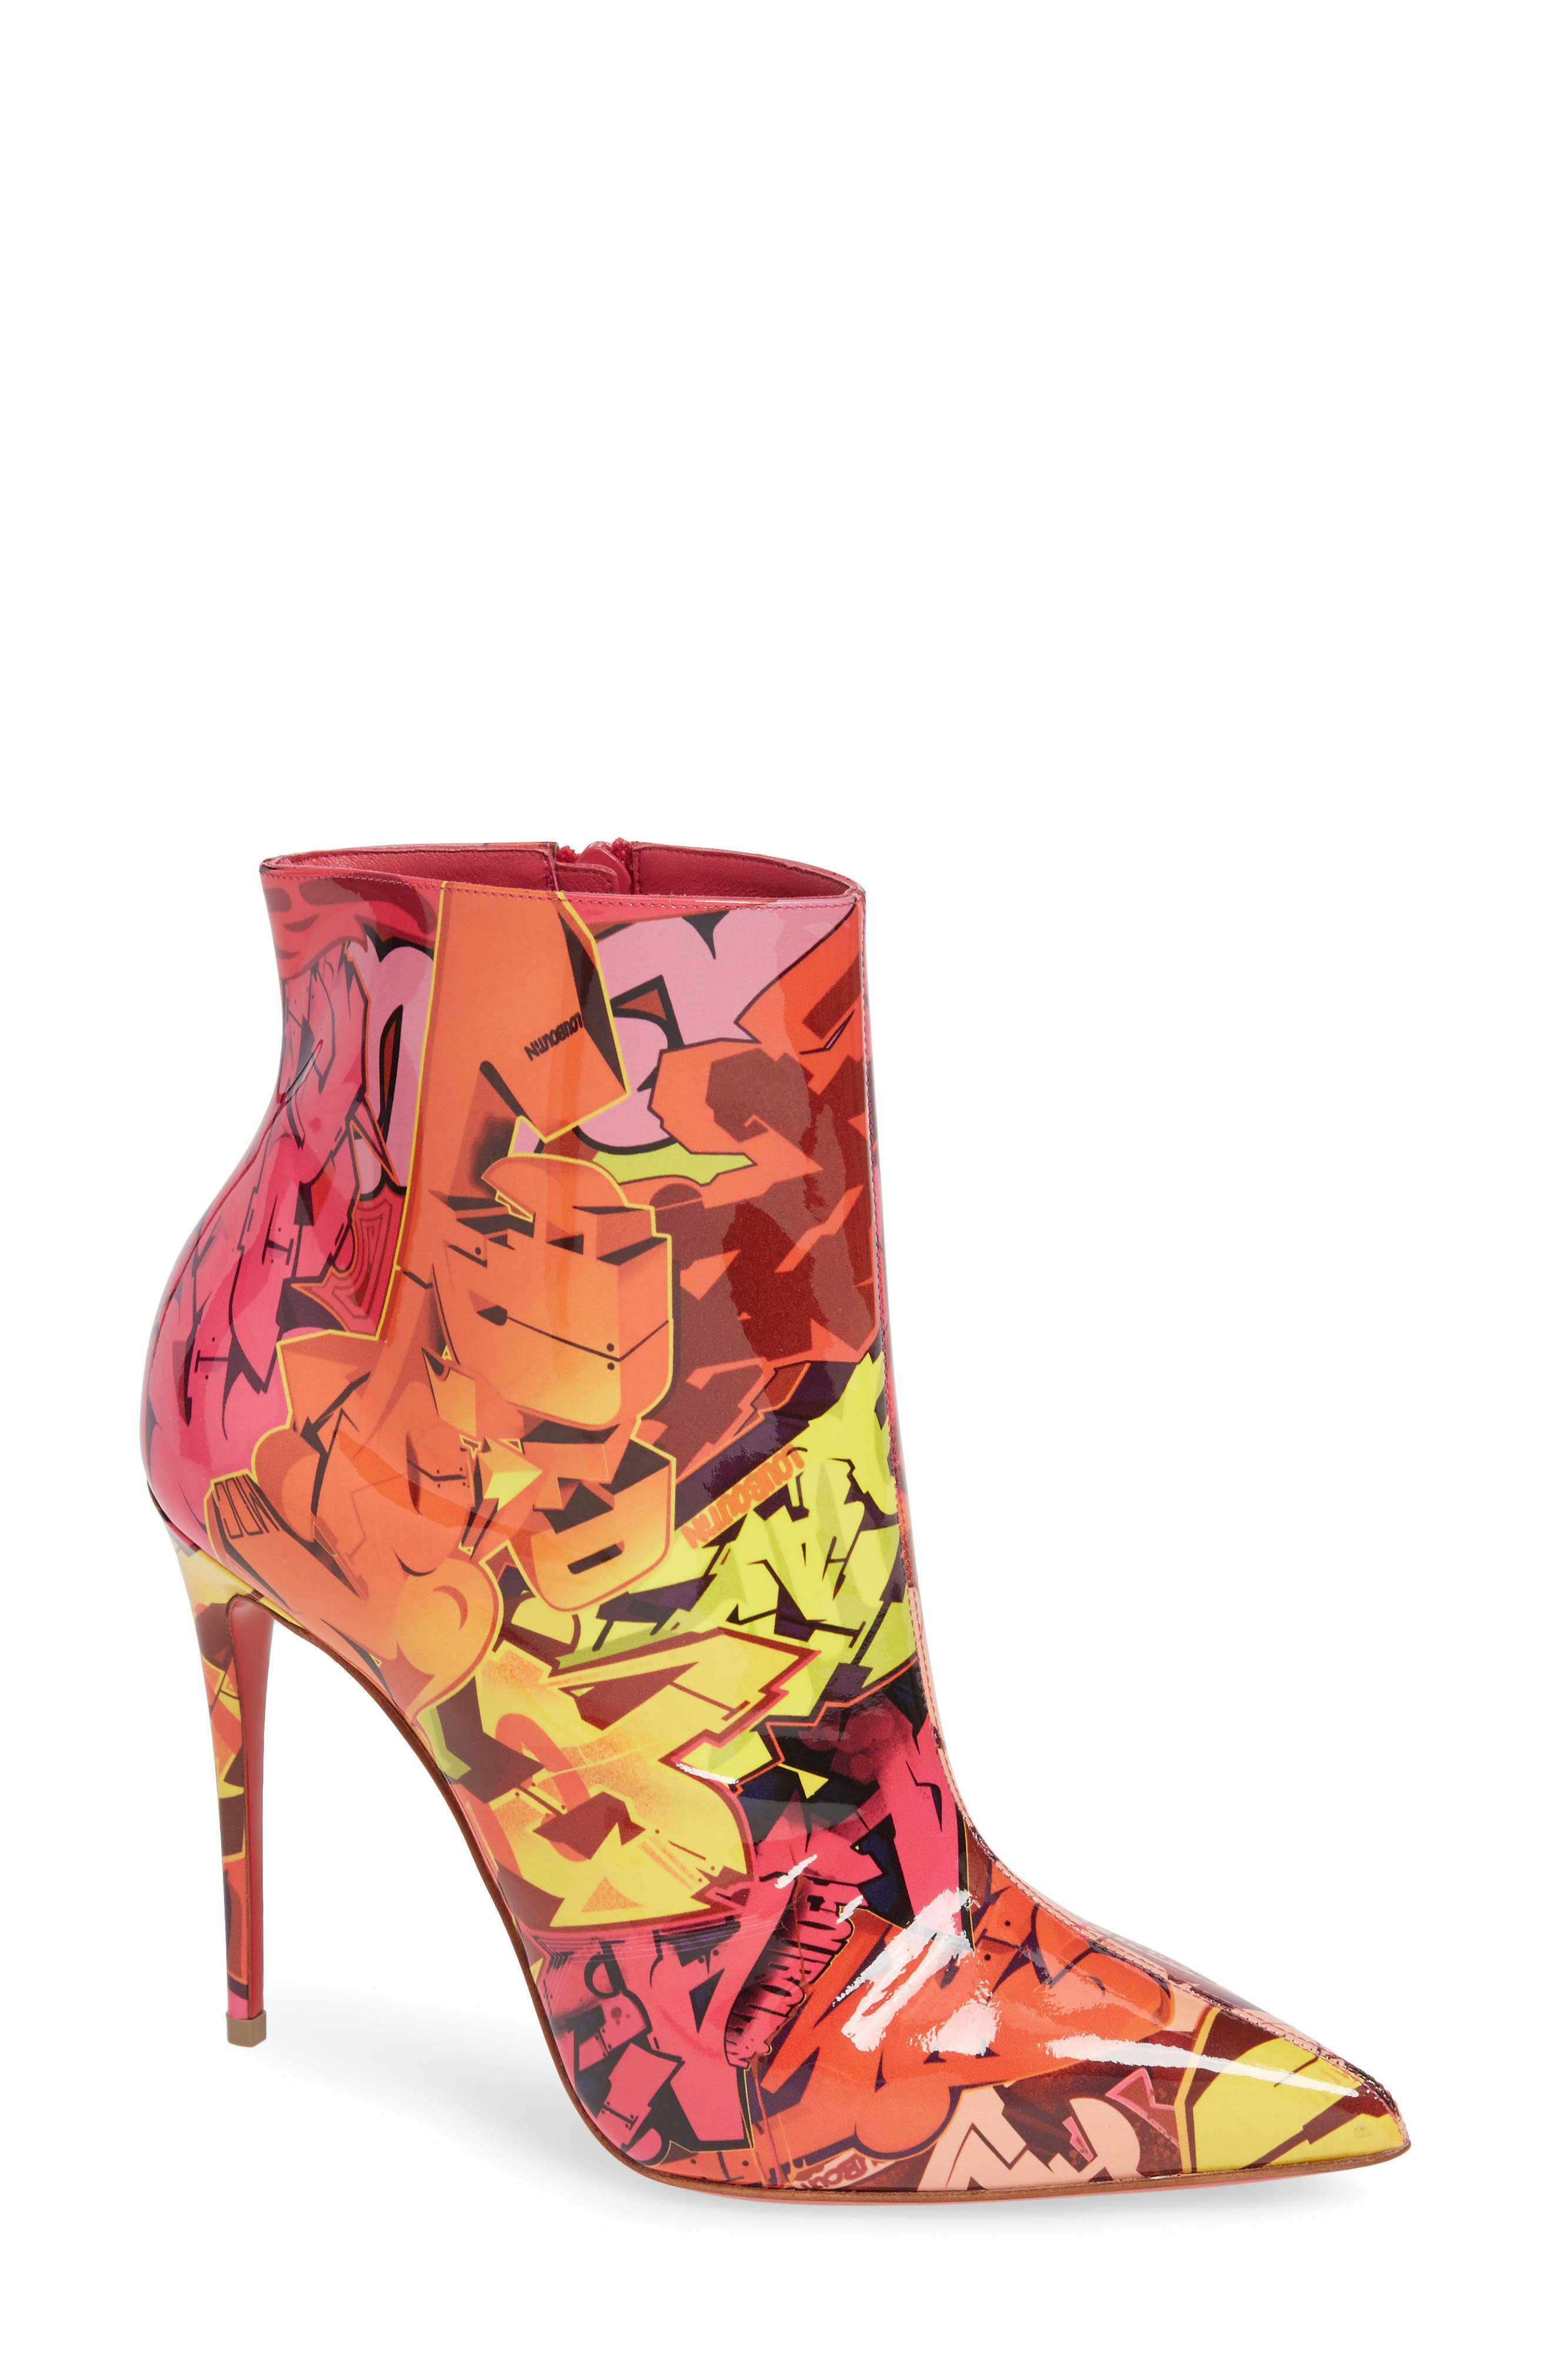 Christian Louboutin So Kate Graffiti Bootie - Red